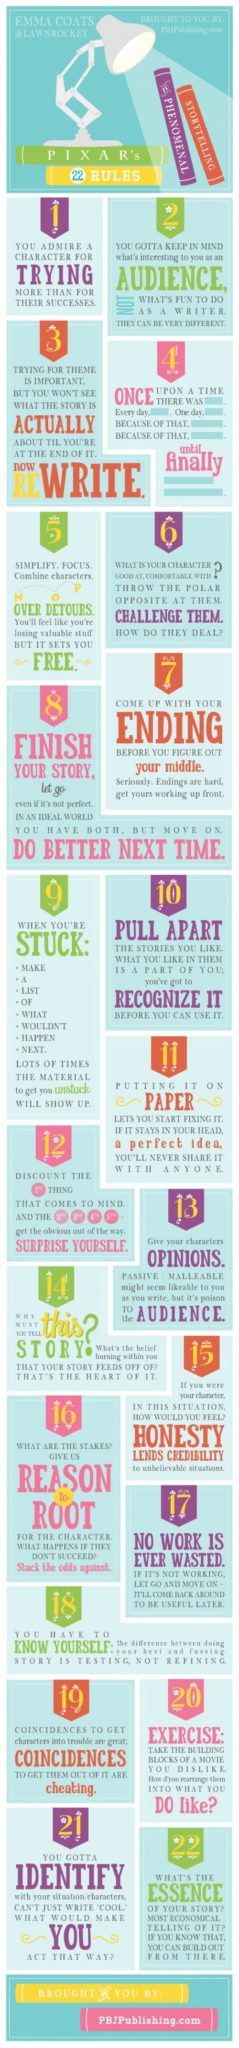 Pixar rules of storytelling